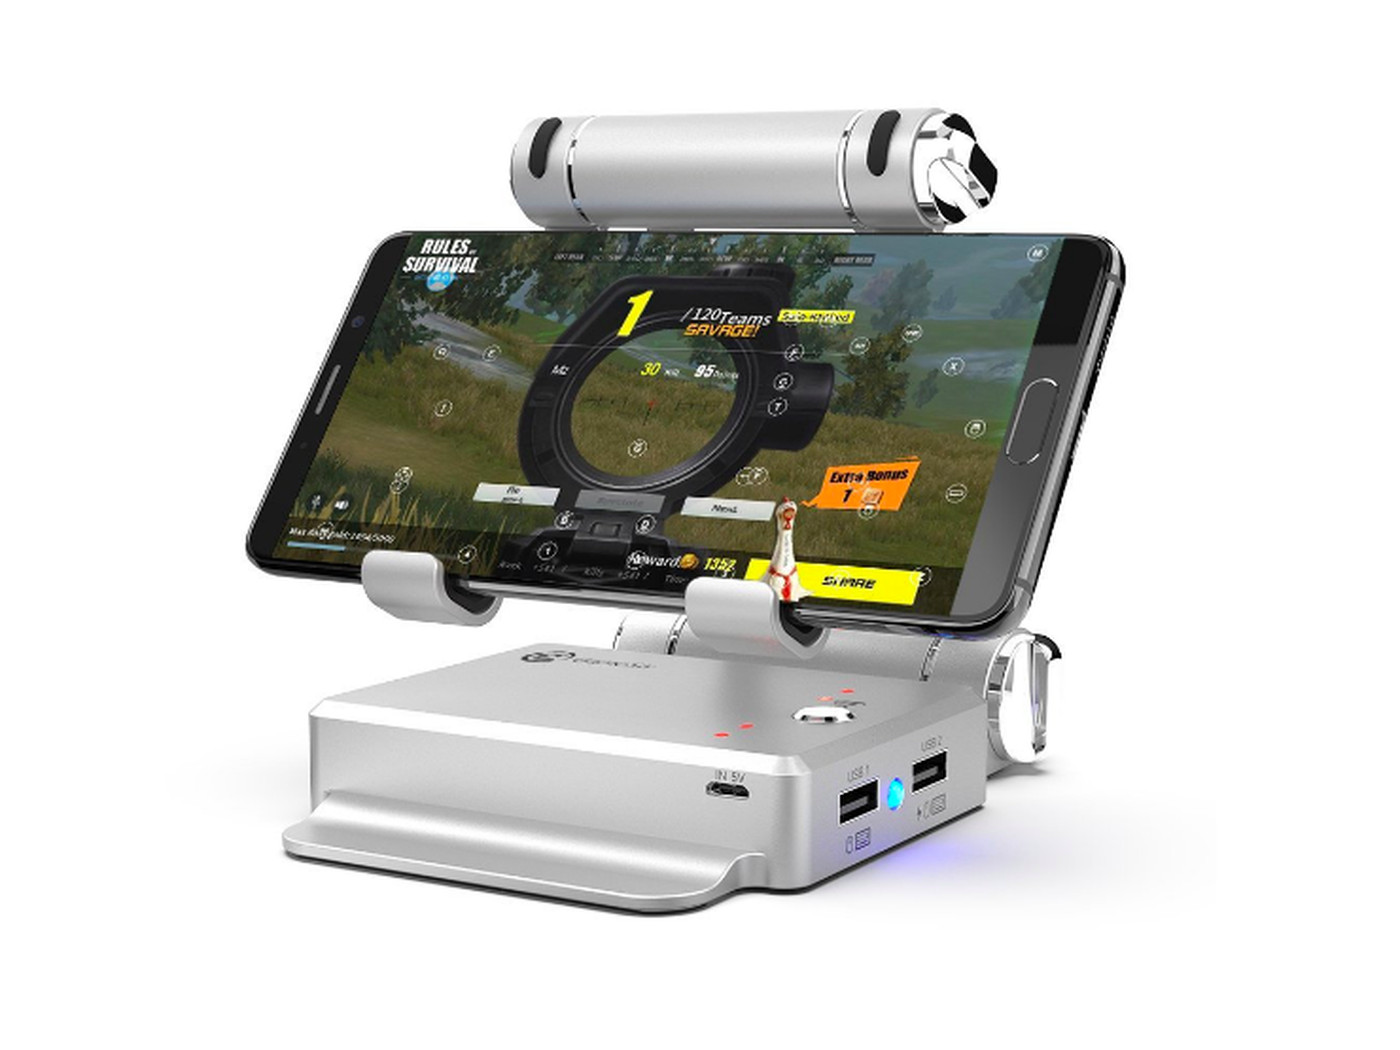 Stick To Fortnite On Pc And Consoles This Mobile Dock Isn T Worth It Polygon